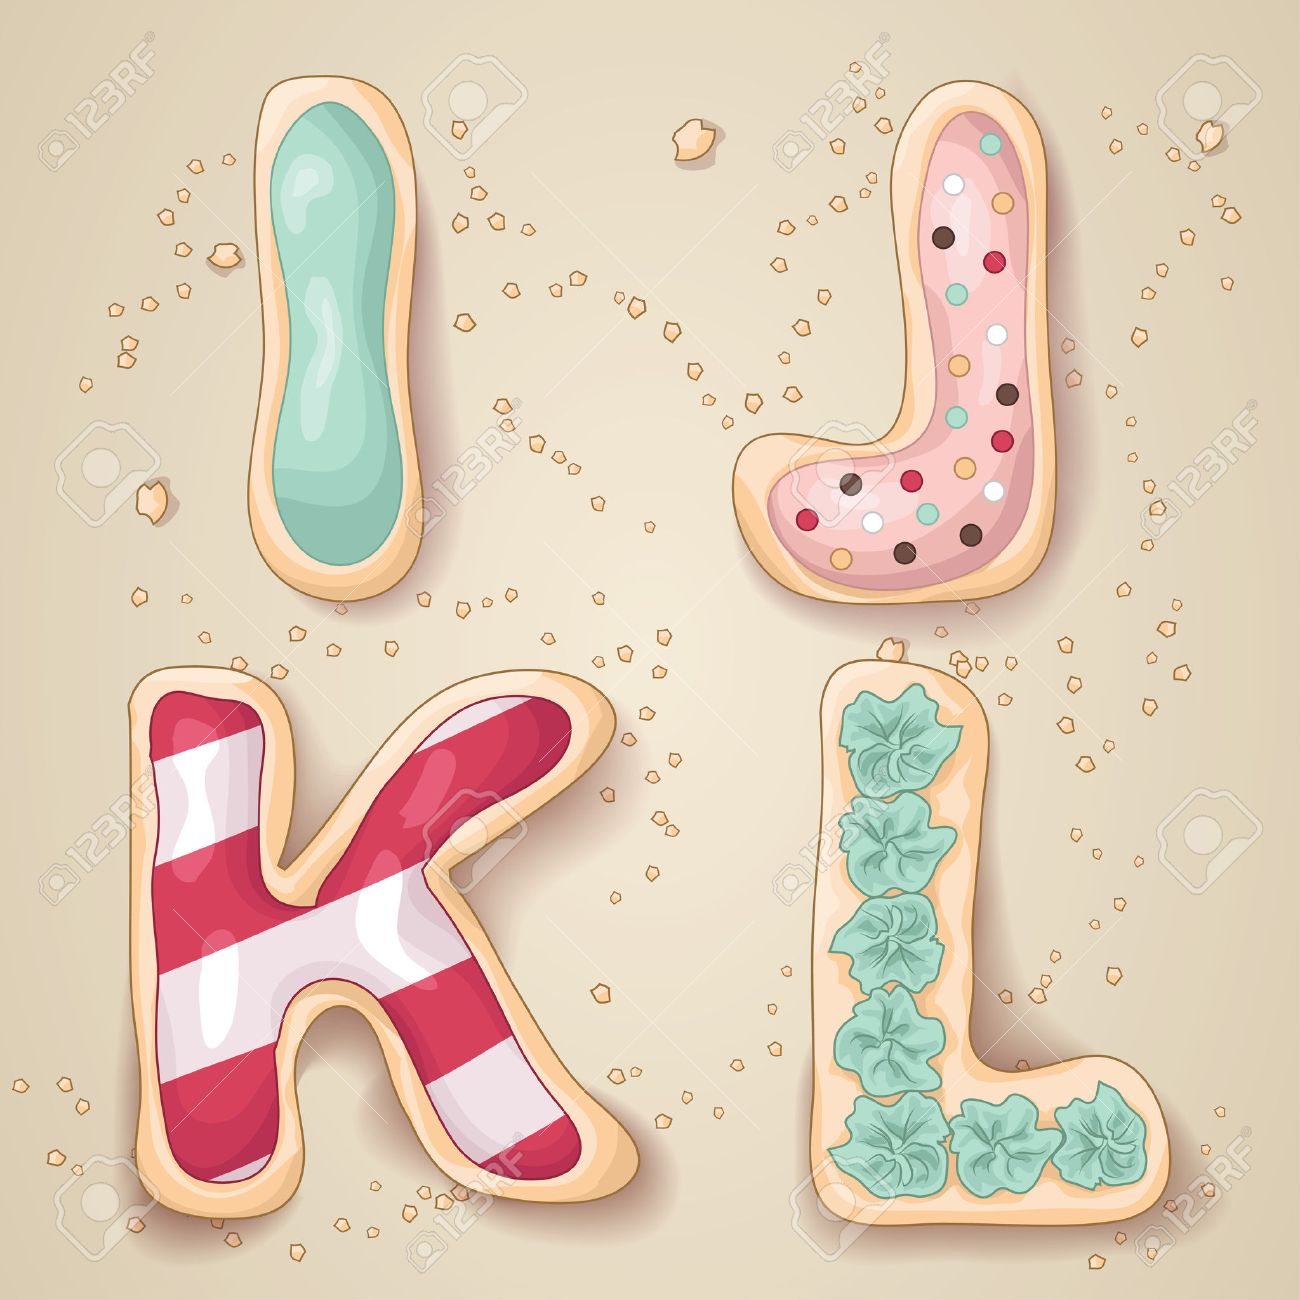 bake sign stock photos pictures royalty bake bake sign hand drawn letters of the alphabet i through l in the shape